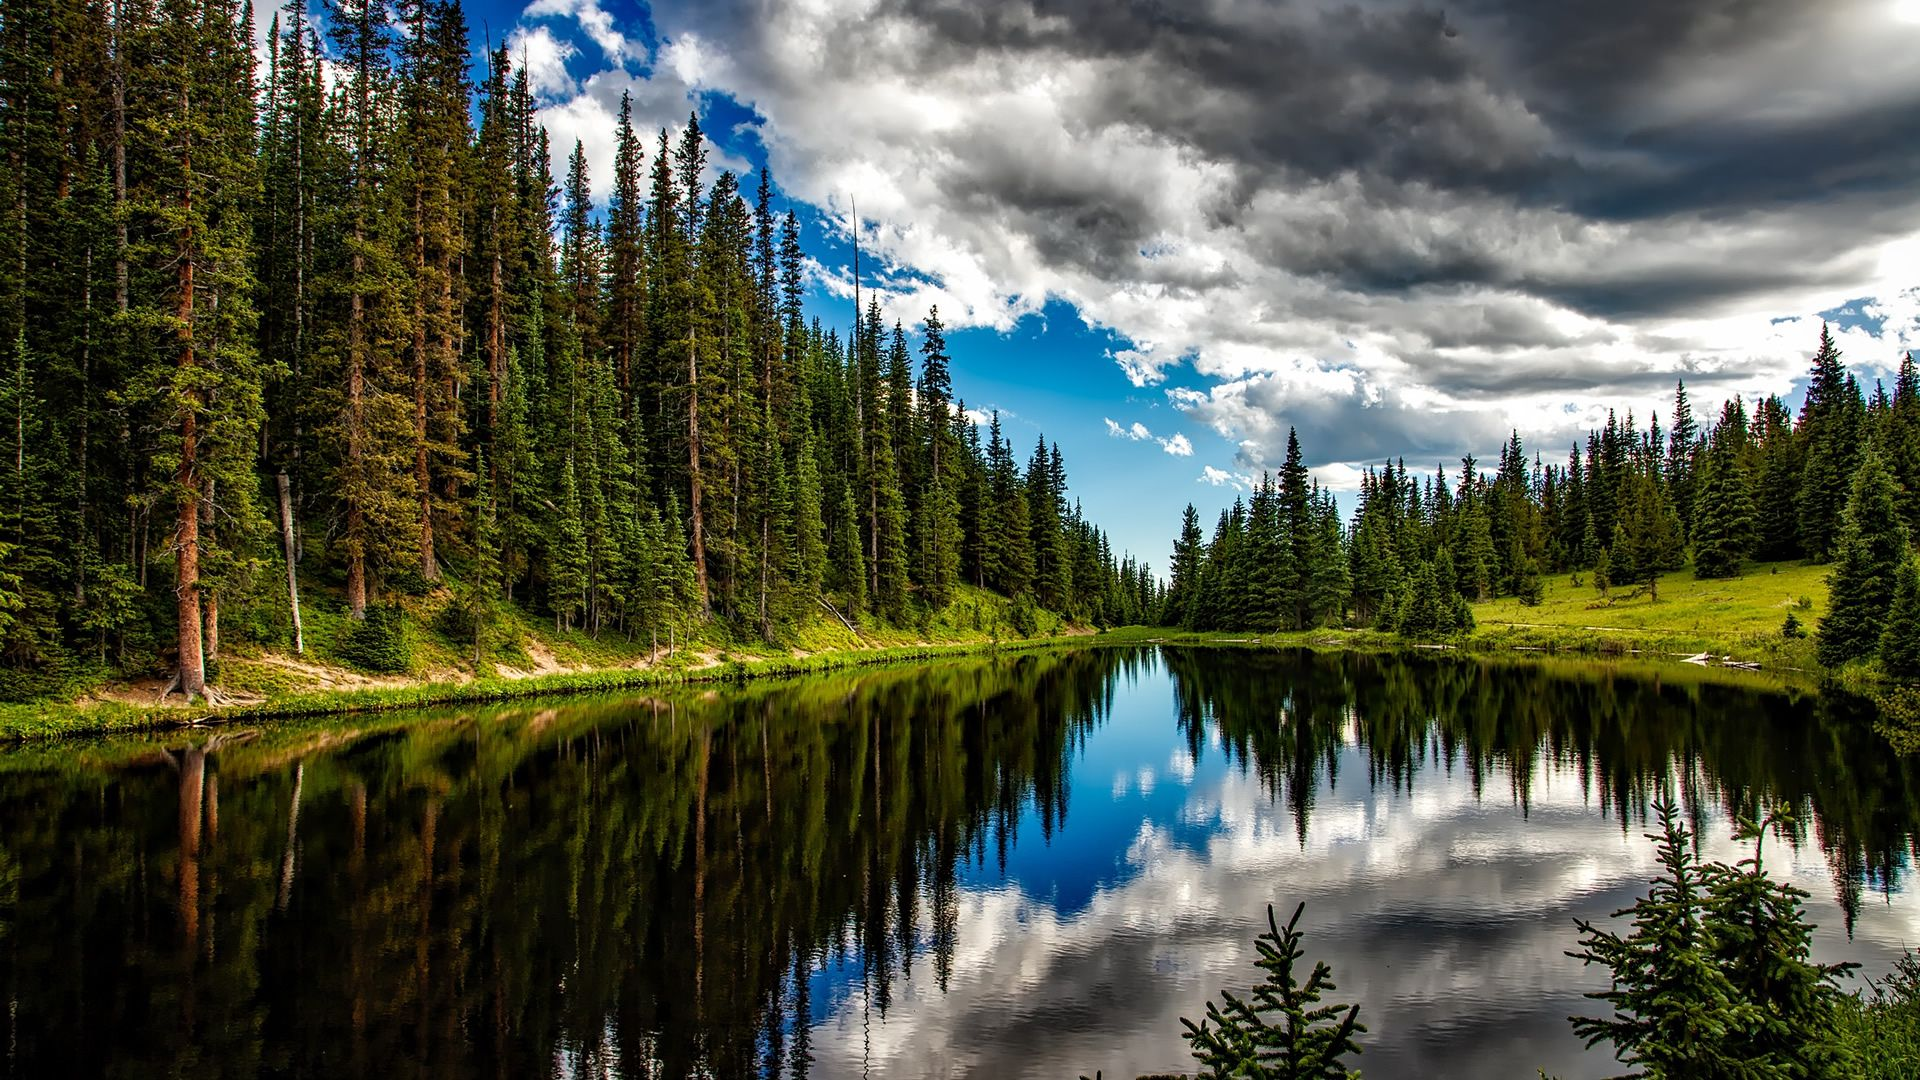 Forest Lake Wallpapers Top Free Forest Lake Backgrounds Wallpaperaccess